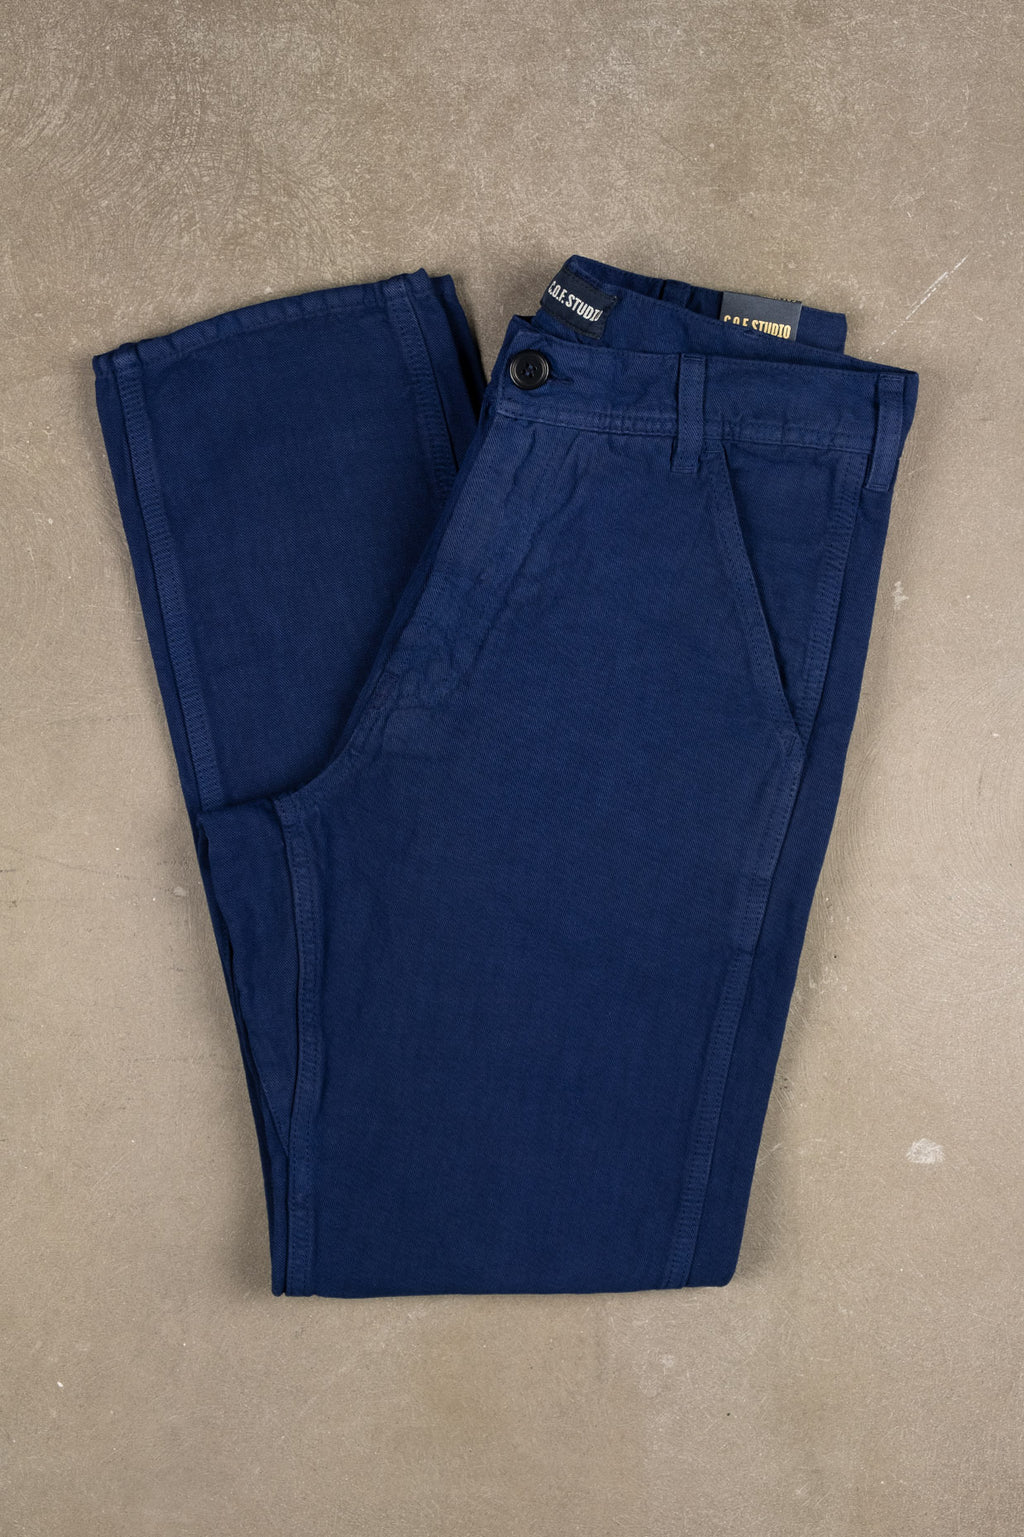 Labour Pant Cotton Linen Twill - French Blue